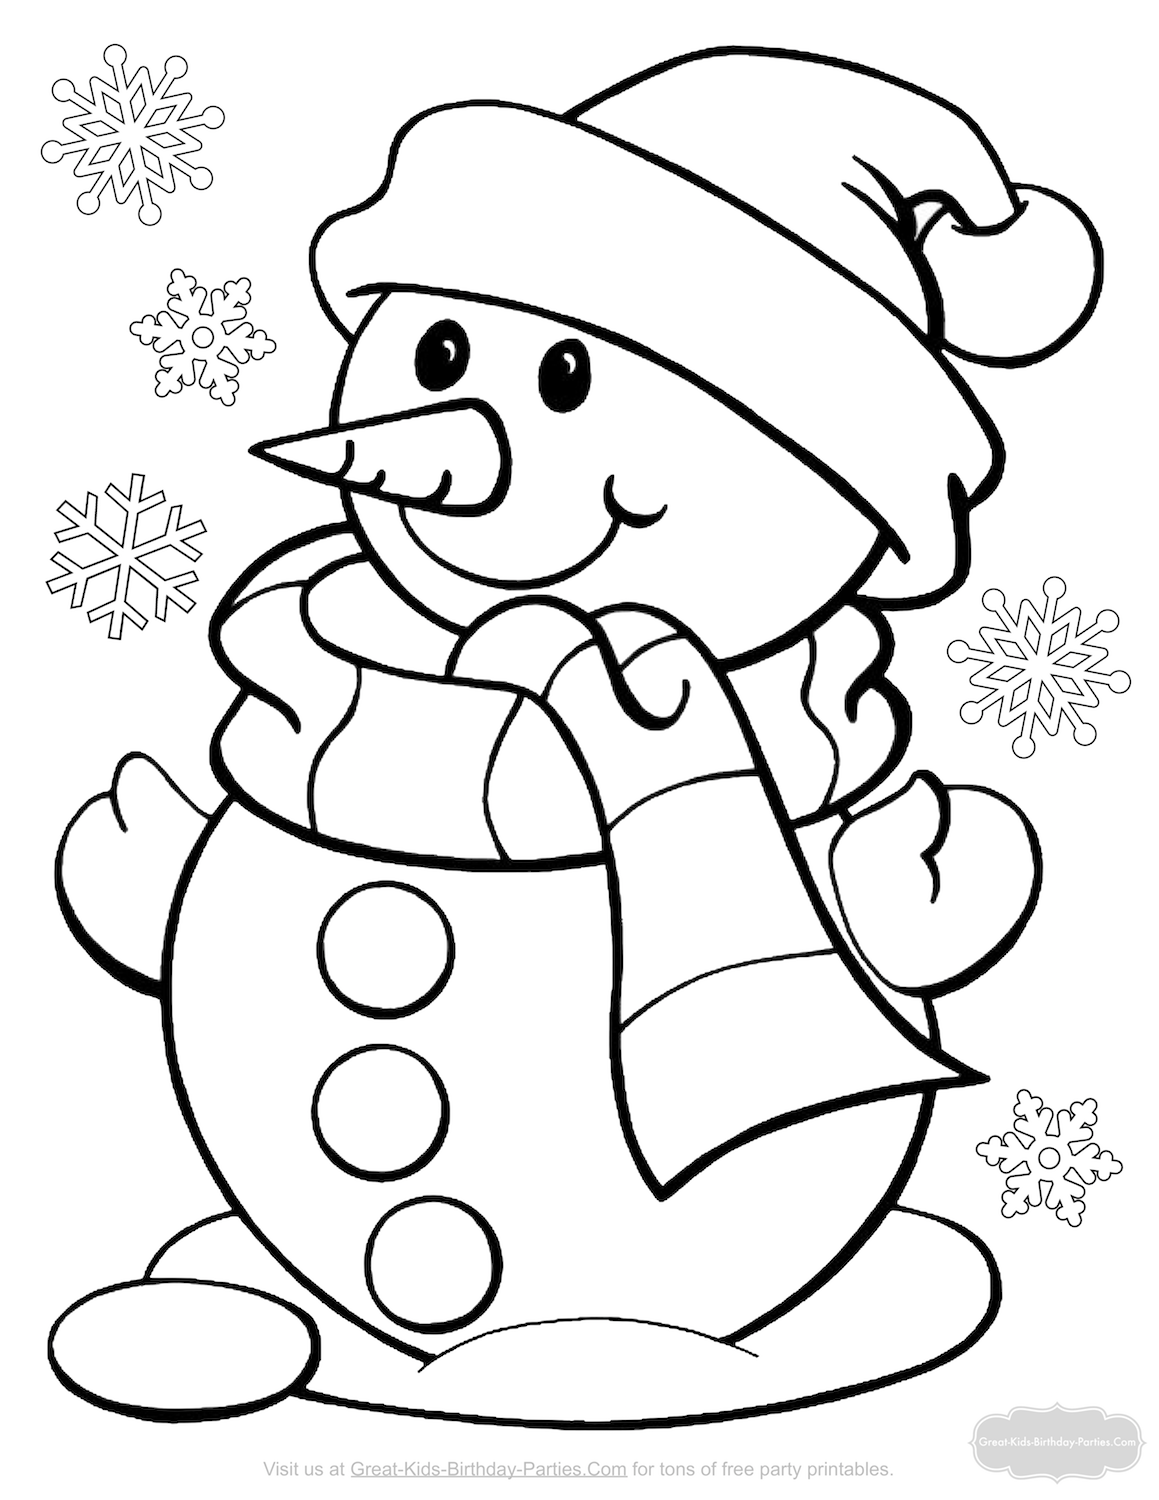 christmas coloring pages christmas coloring sheets snowman coloring pages christmas coloring pages christmas coloring pages christmas